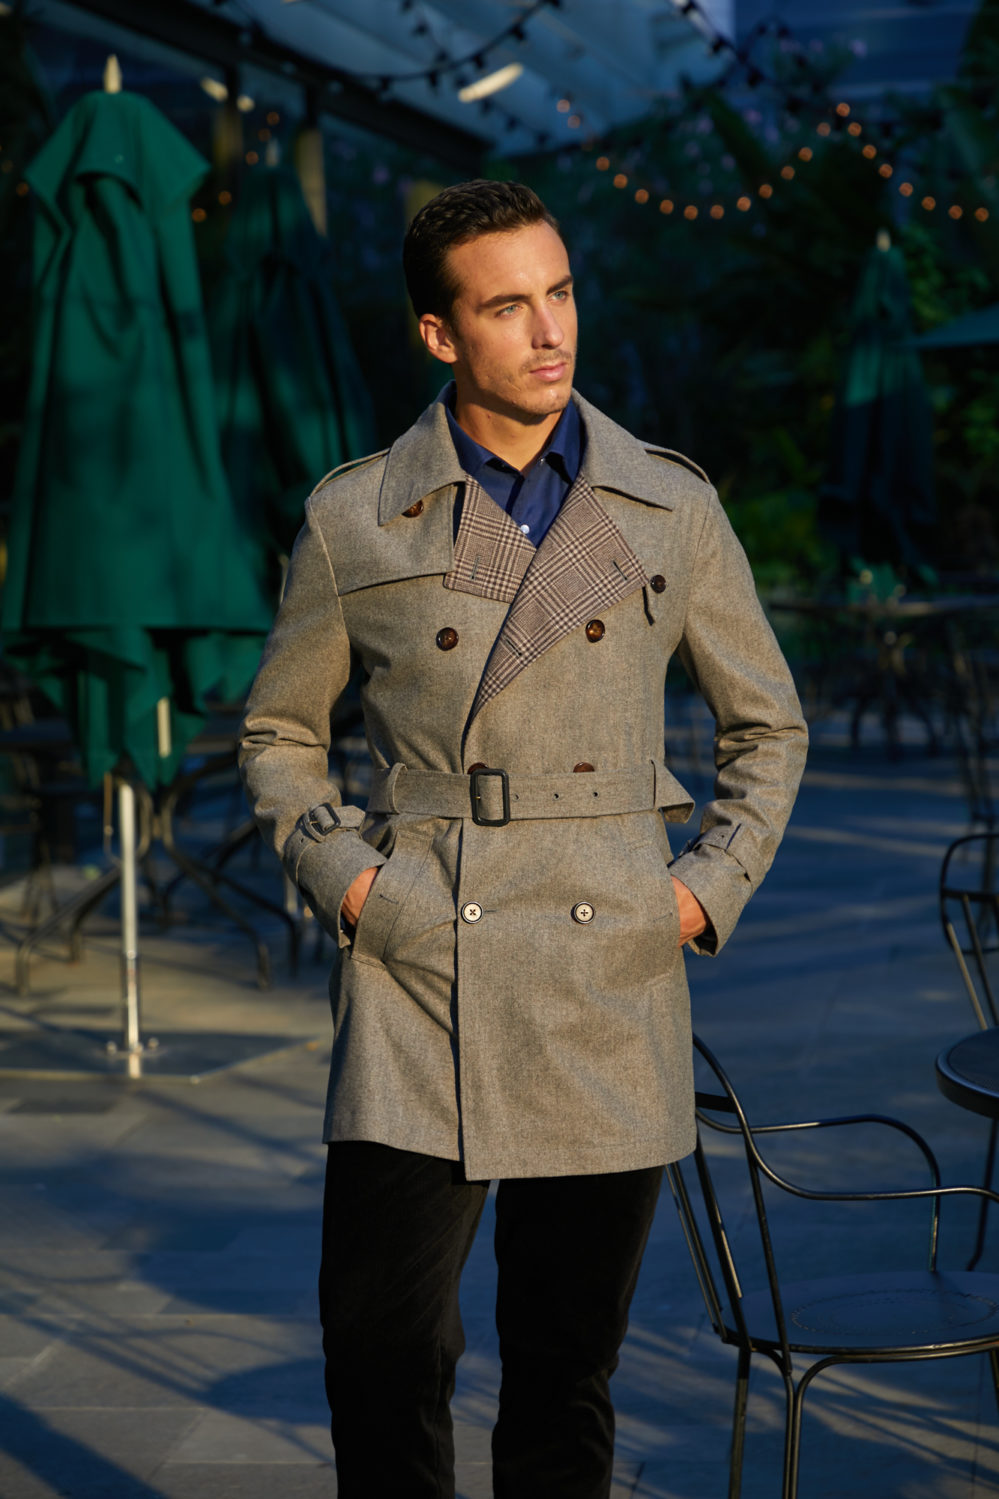 Elegant trench coat, custom made by Senszio's expert tailors in the finest premium fabrics